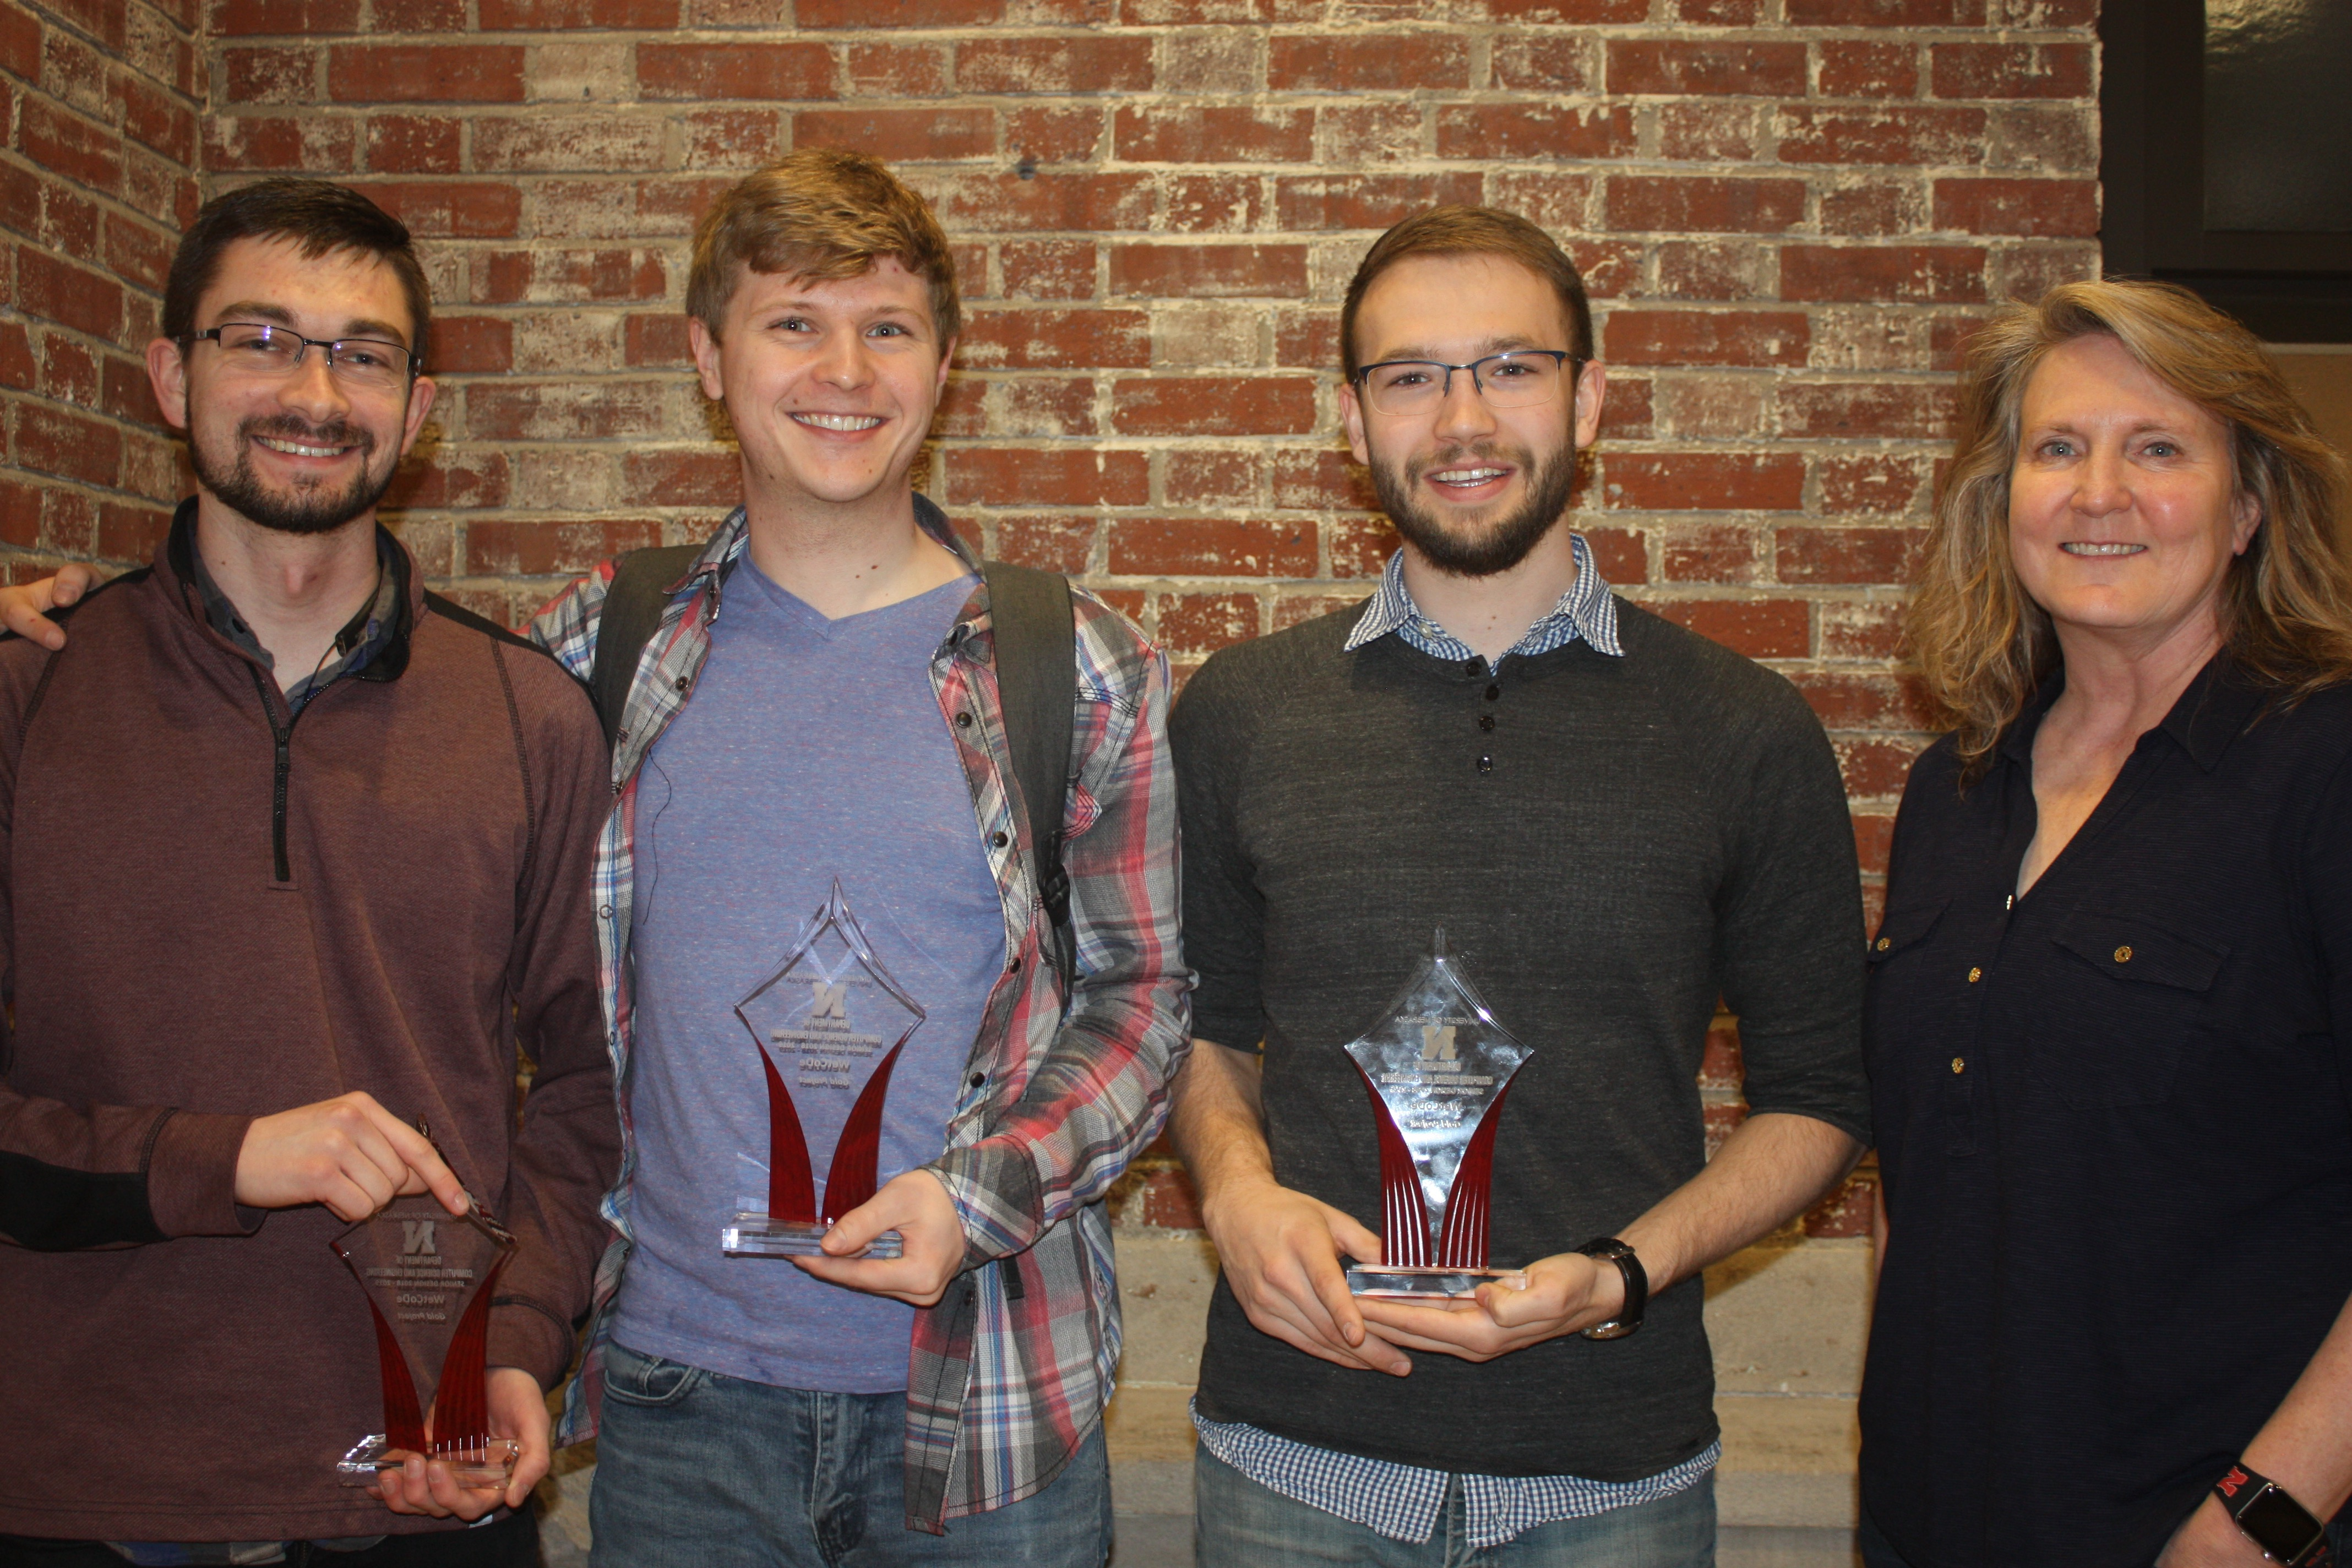 Gold Award team members Tyler Barker, Alex Enersen, and Colton Harper with project manager Melanie Kugler-Wright.